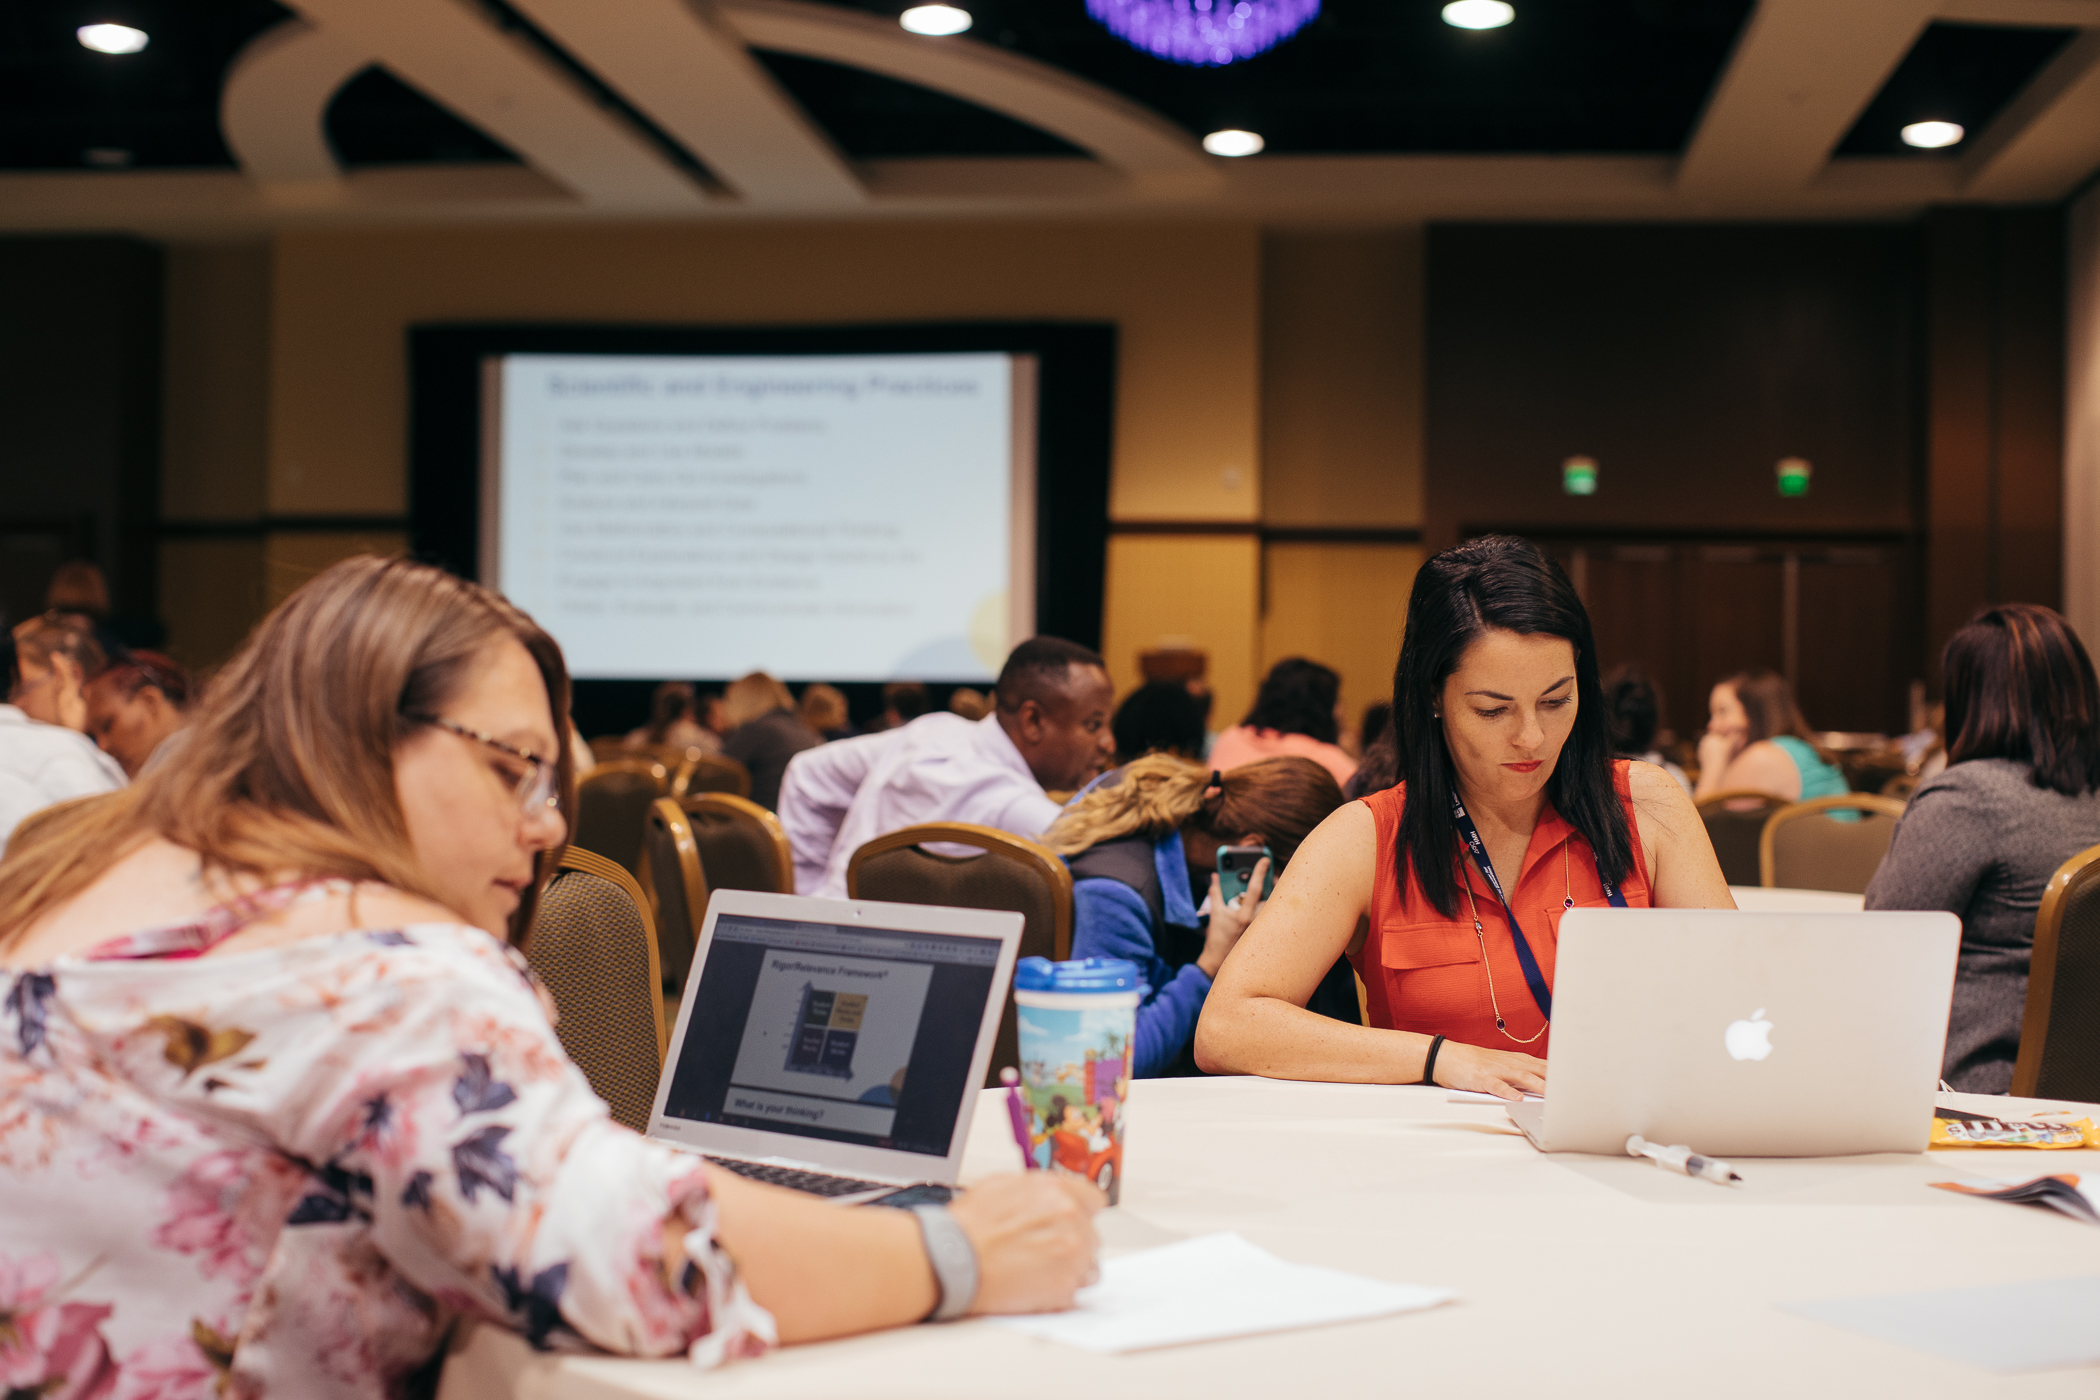 live event commercial photography brand storytelling for education florida conference photographer ©2018abigailbobophotography-80.jpg